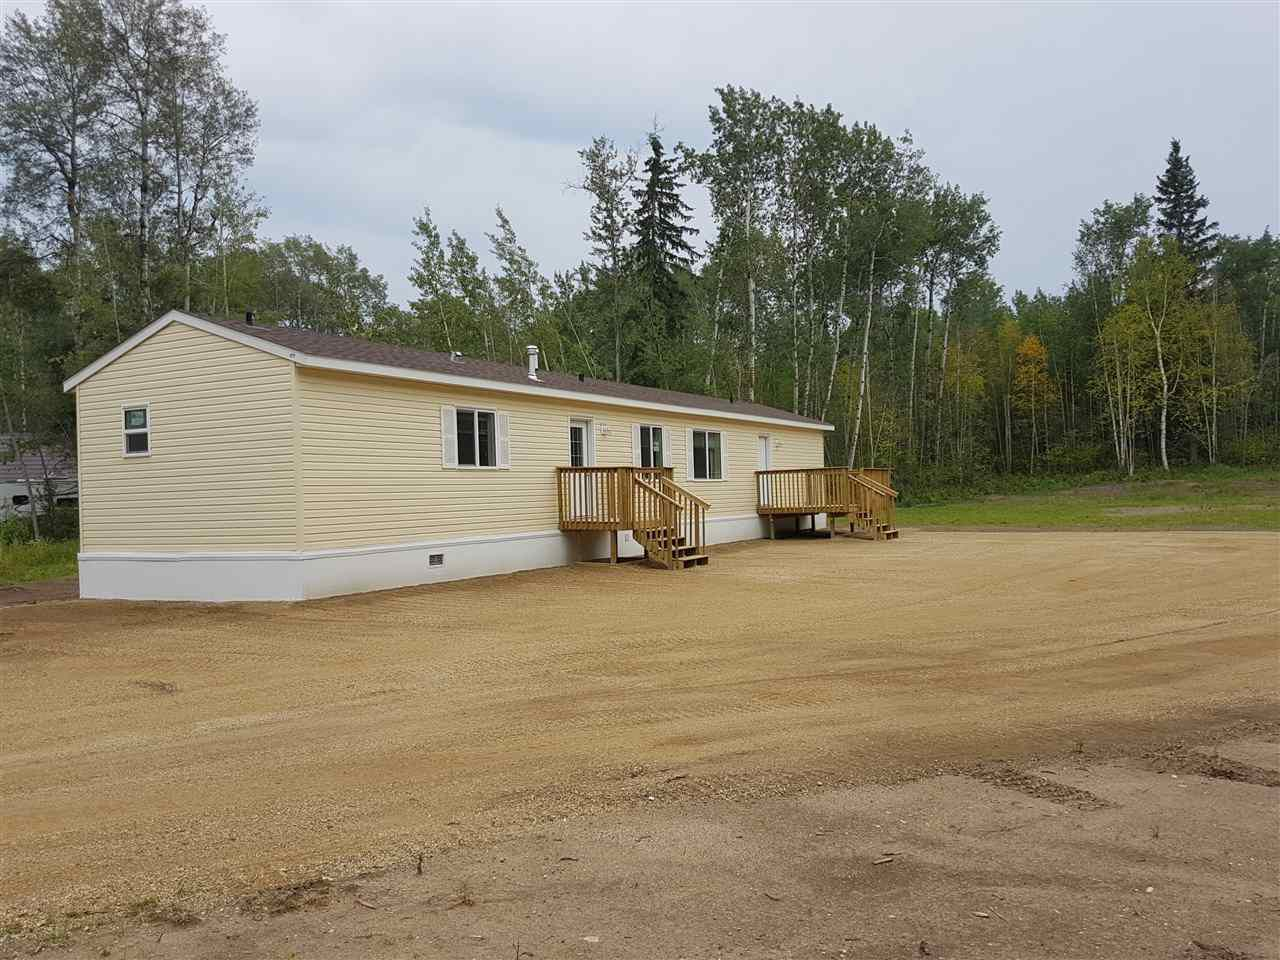 Main Photo: 6 54104 RANGE ROAD 35: Rural Lac Ste. Anne County House for sale : MLS®# E4142547